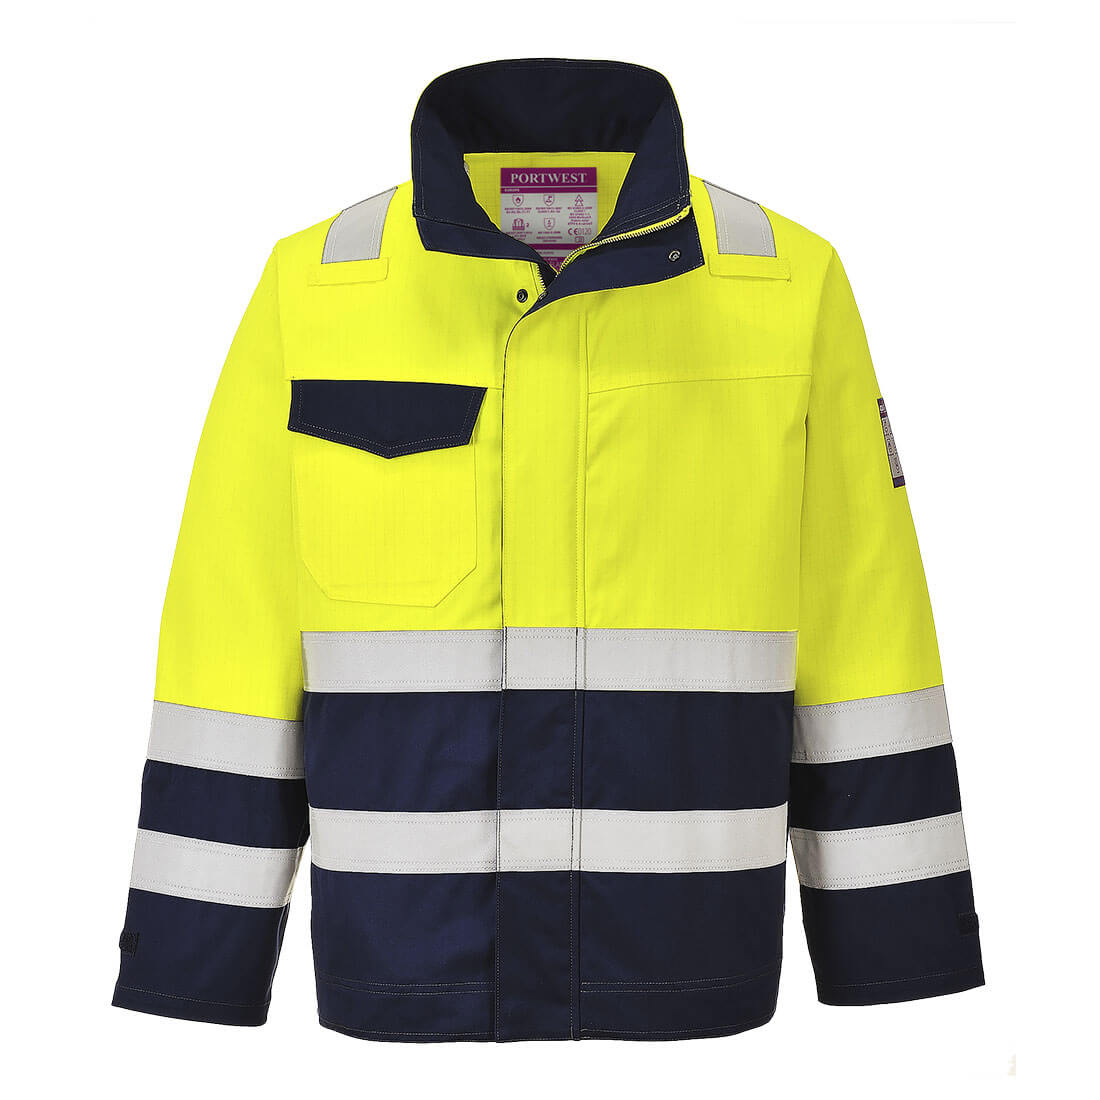 Image of Modaflame Flame Resistant Hi Vis Jacket Yellow / Navy 2XL